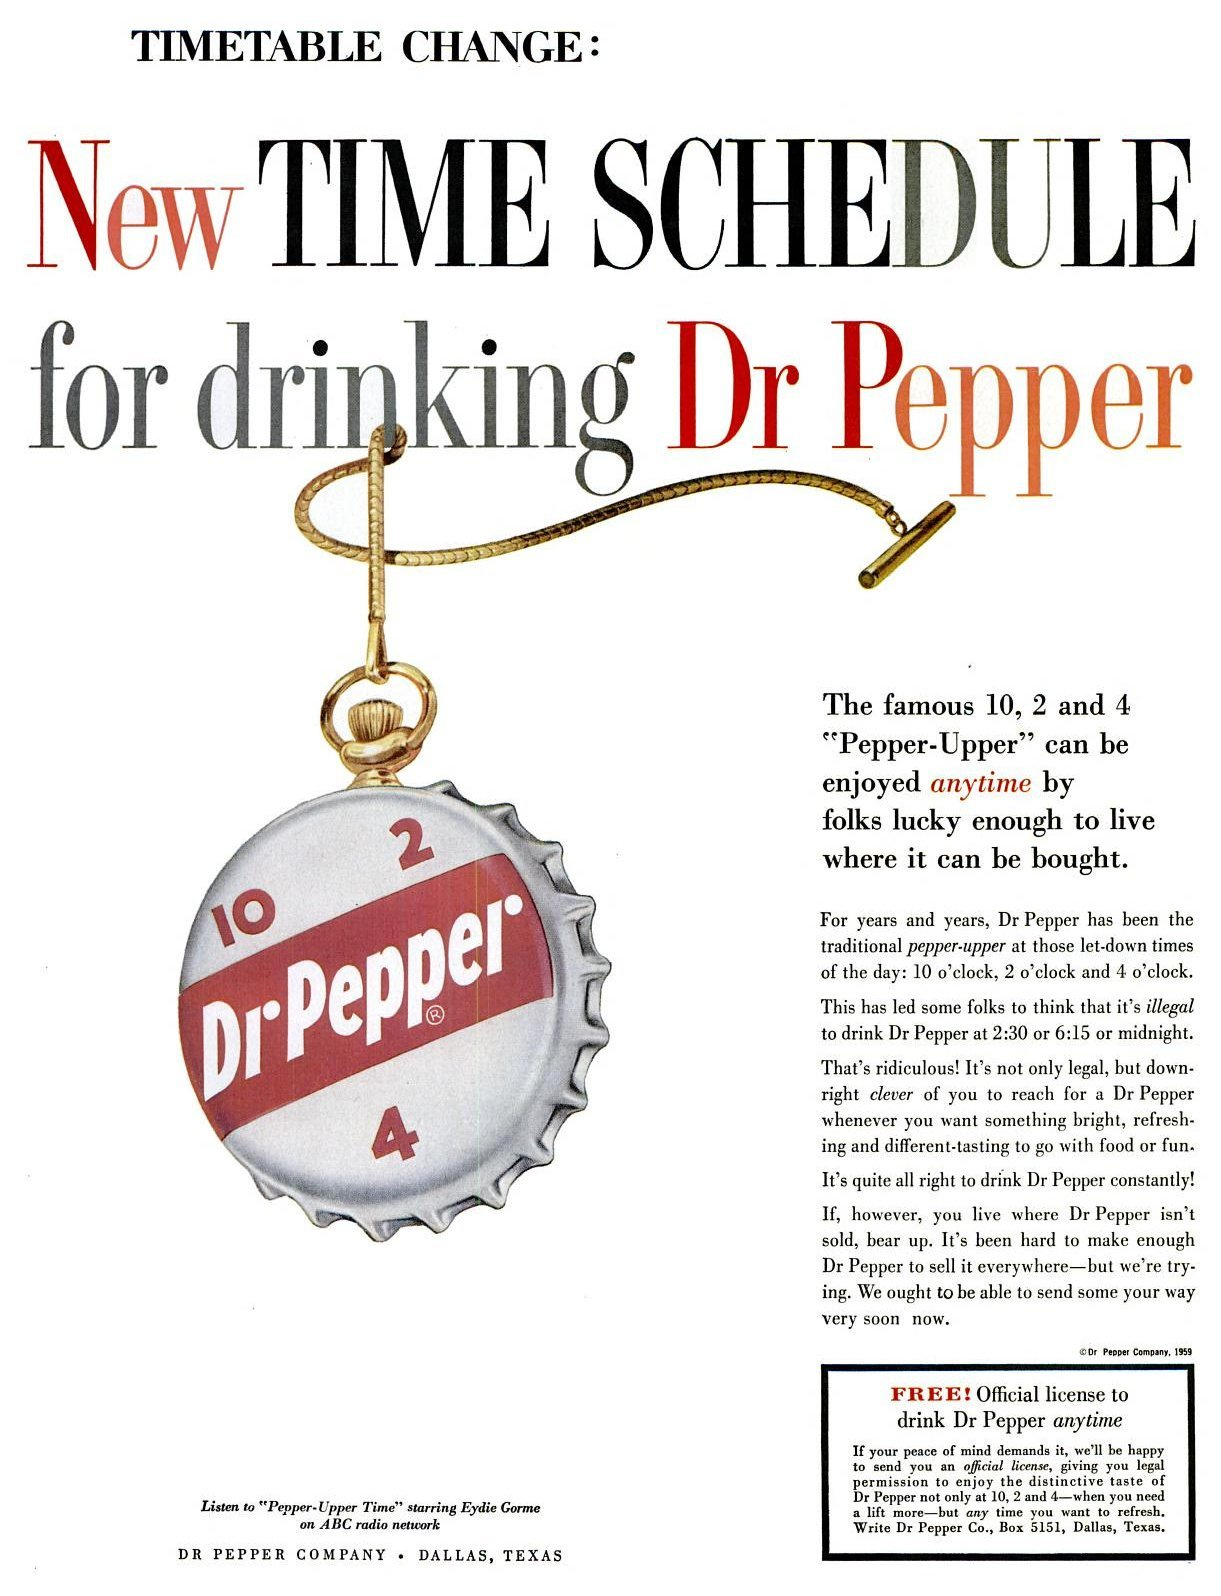 Dr Pepper time schedule (1959)